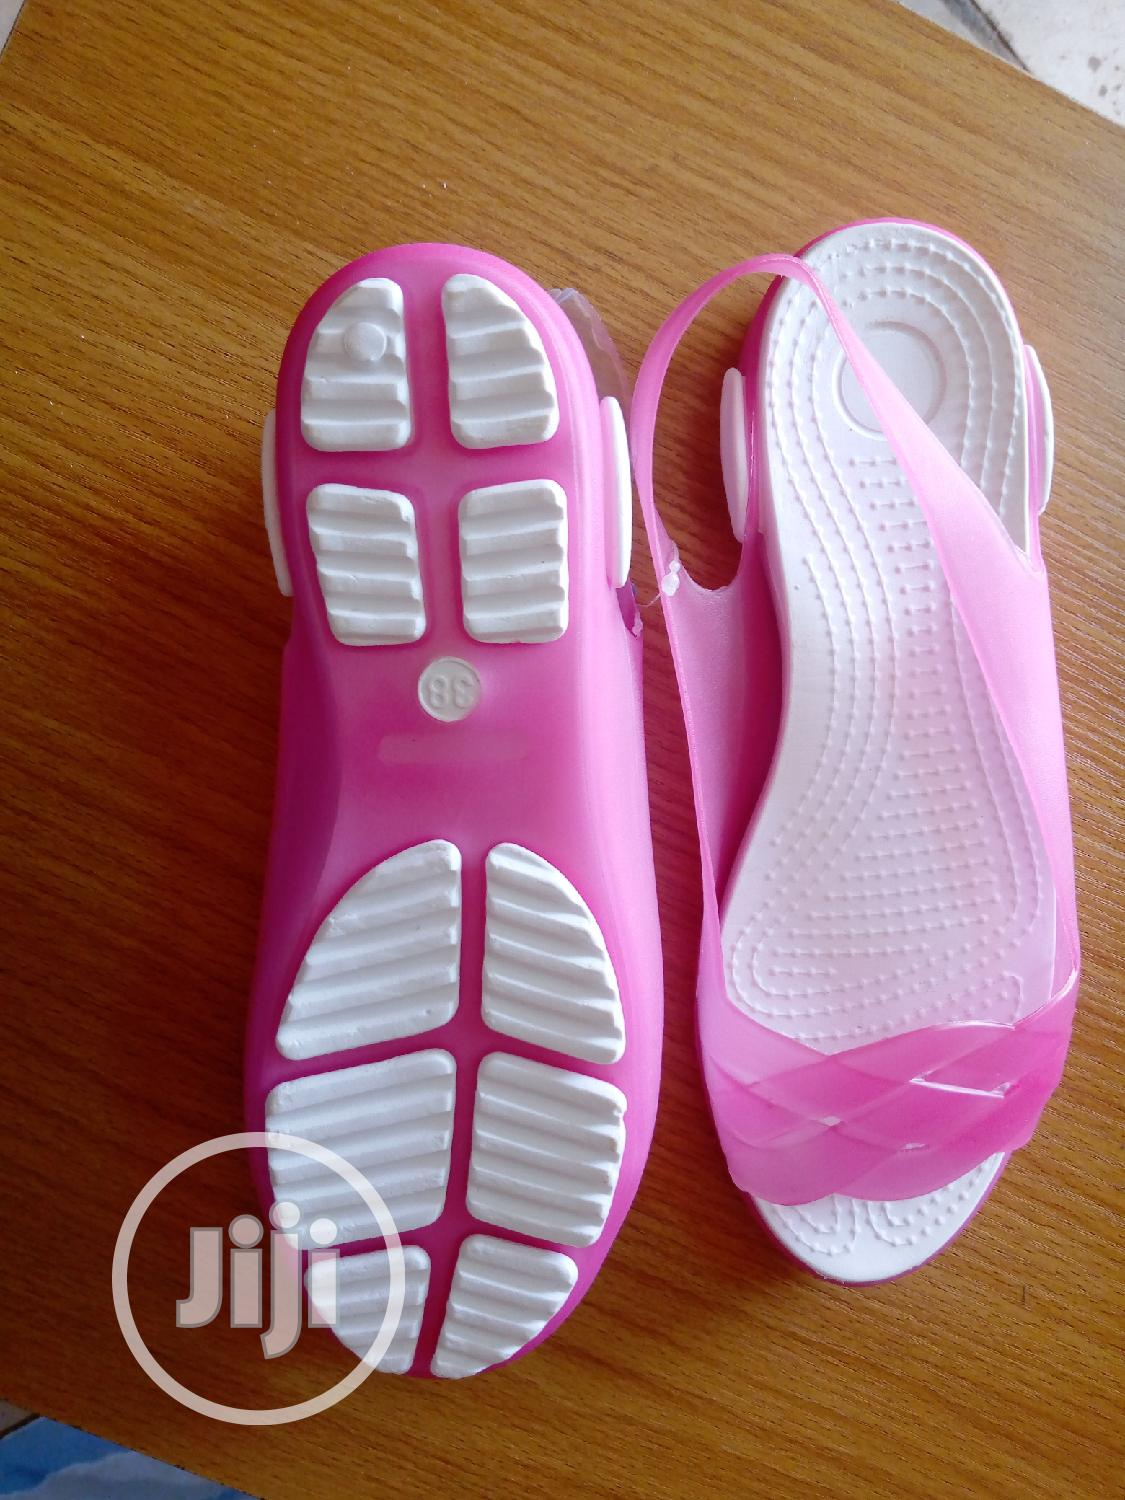 Rubber Sandals   Shoes for sale in Alimosho, Lagos State, Nigeria